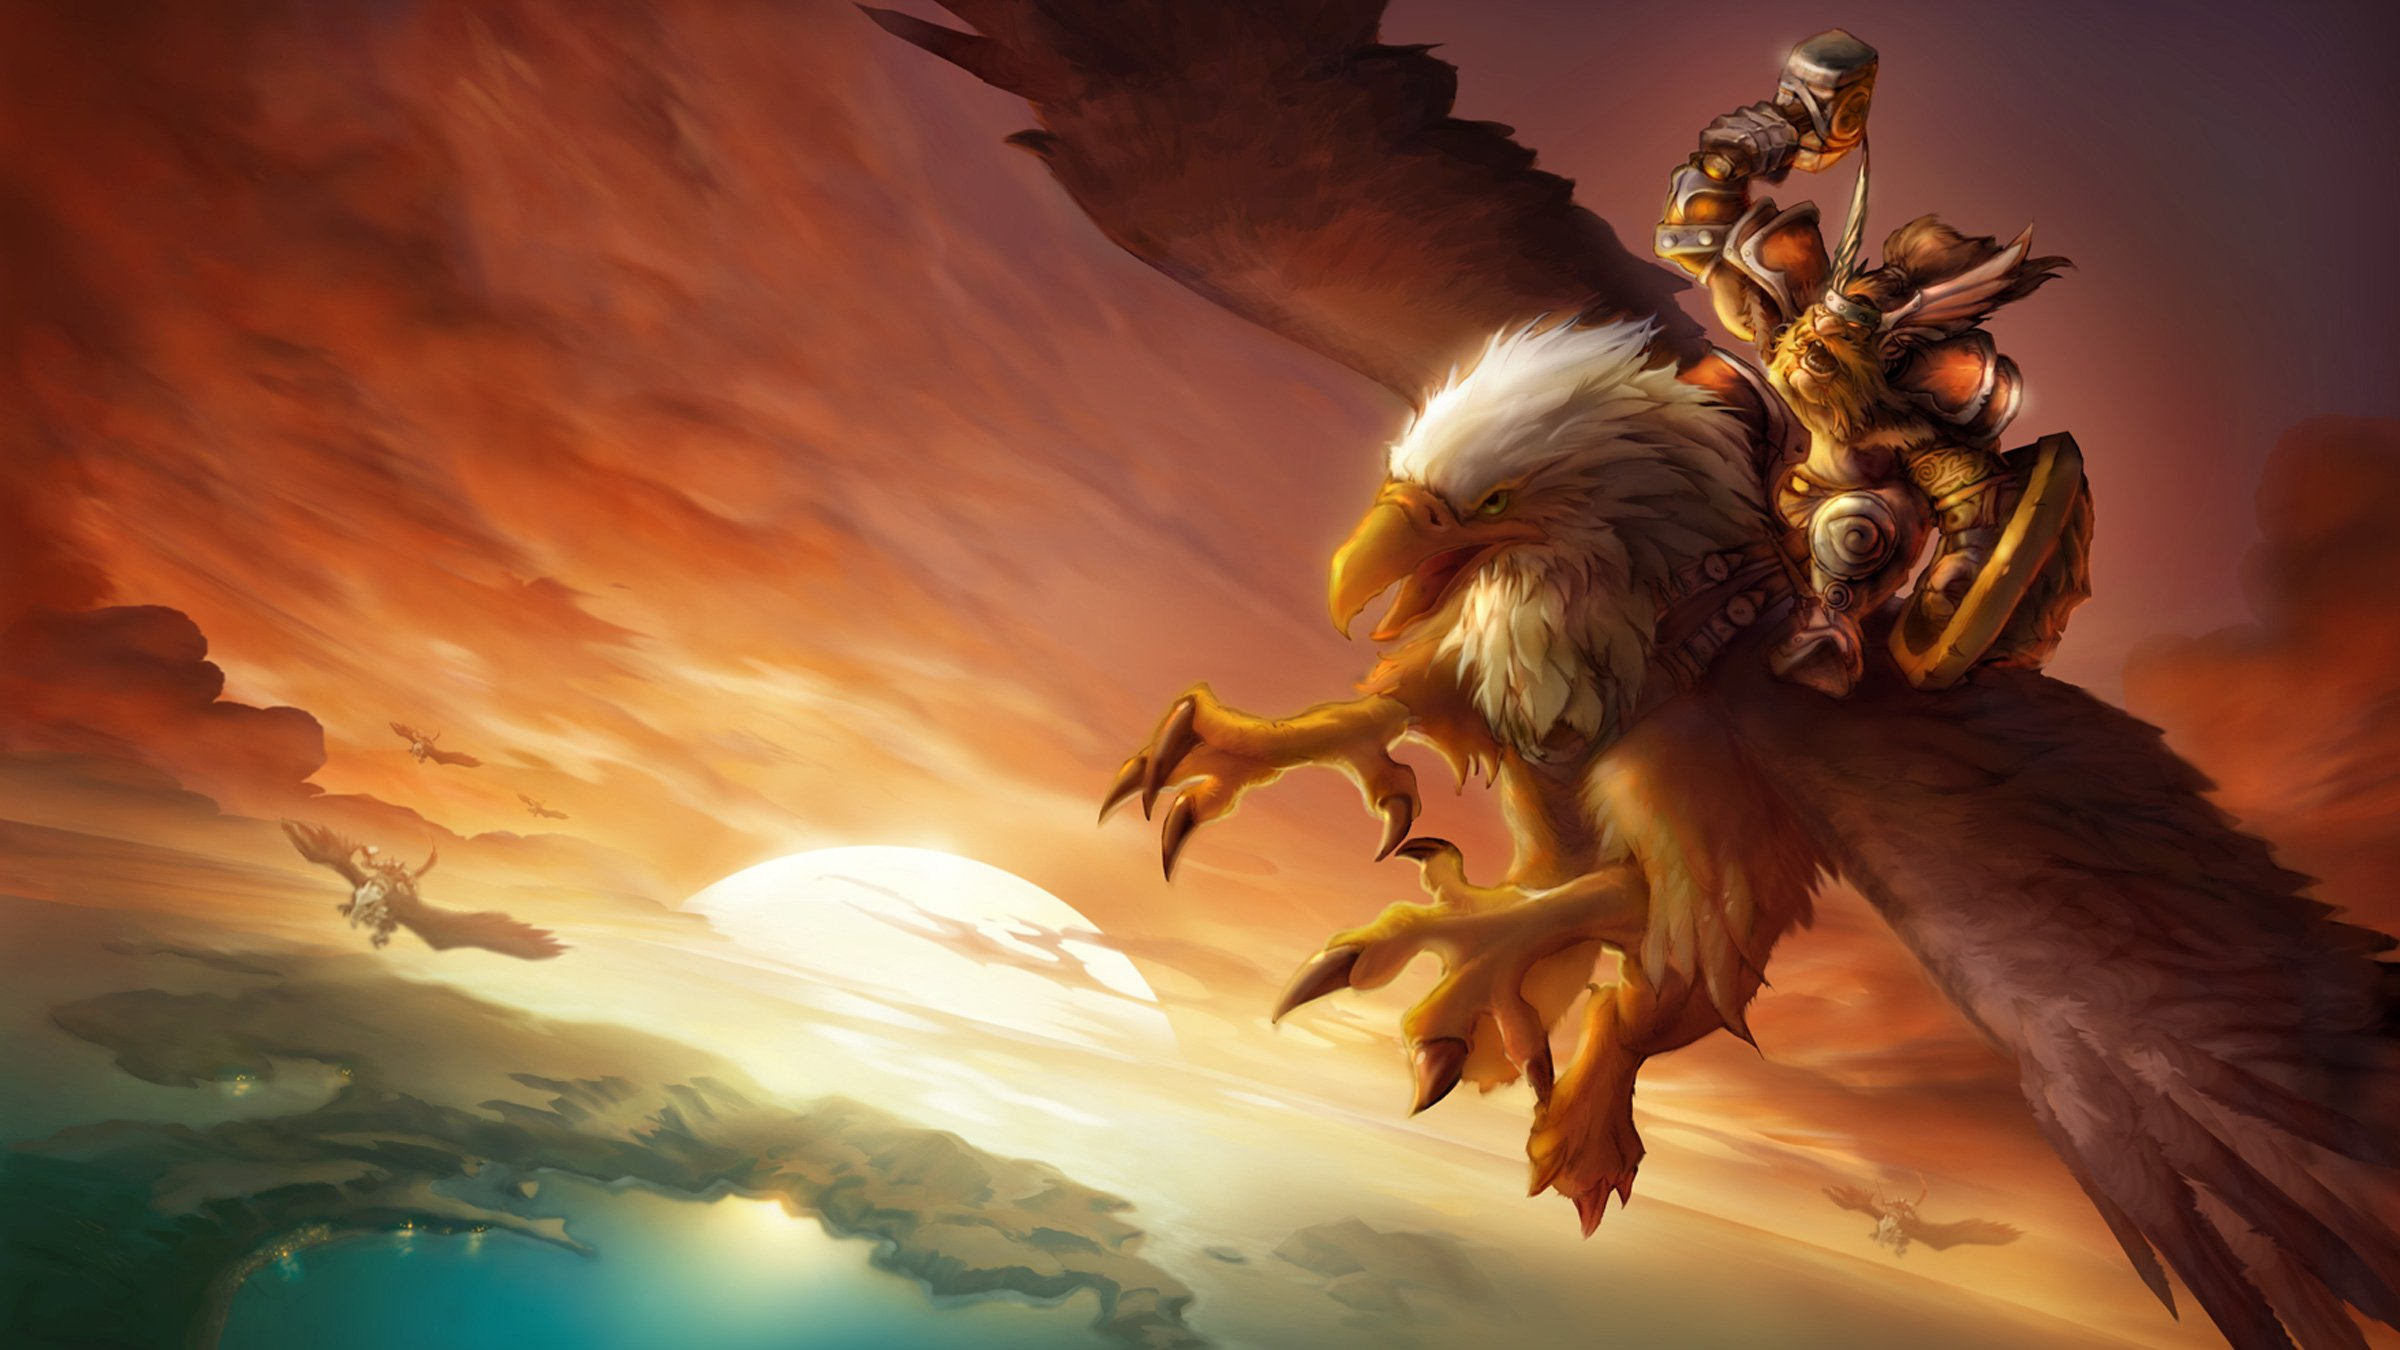 Approximately 800 employees laid off from Activision Blizzard screenshot